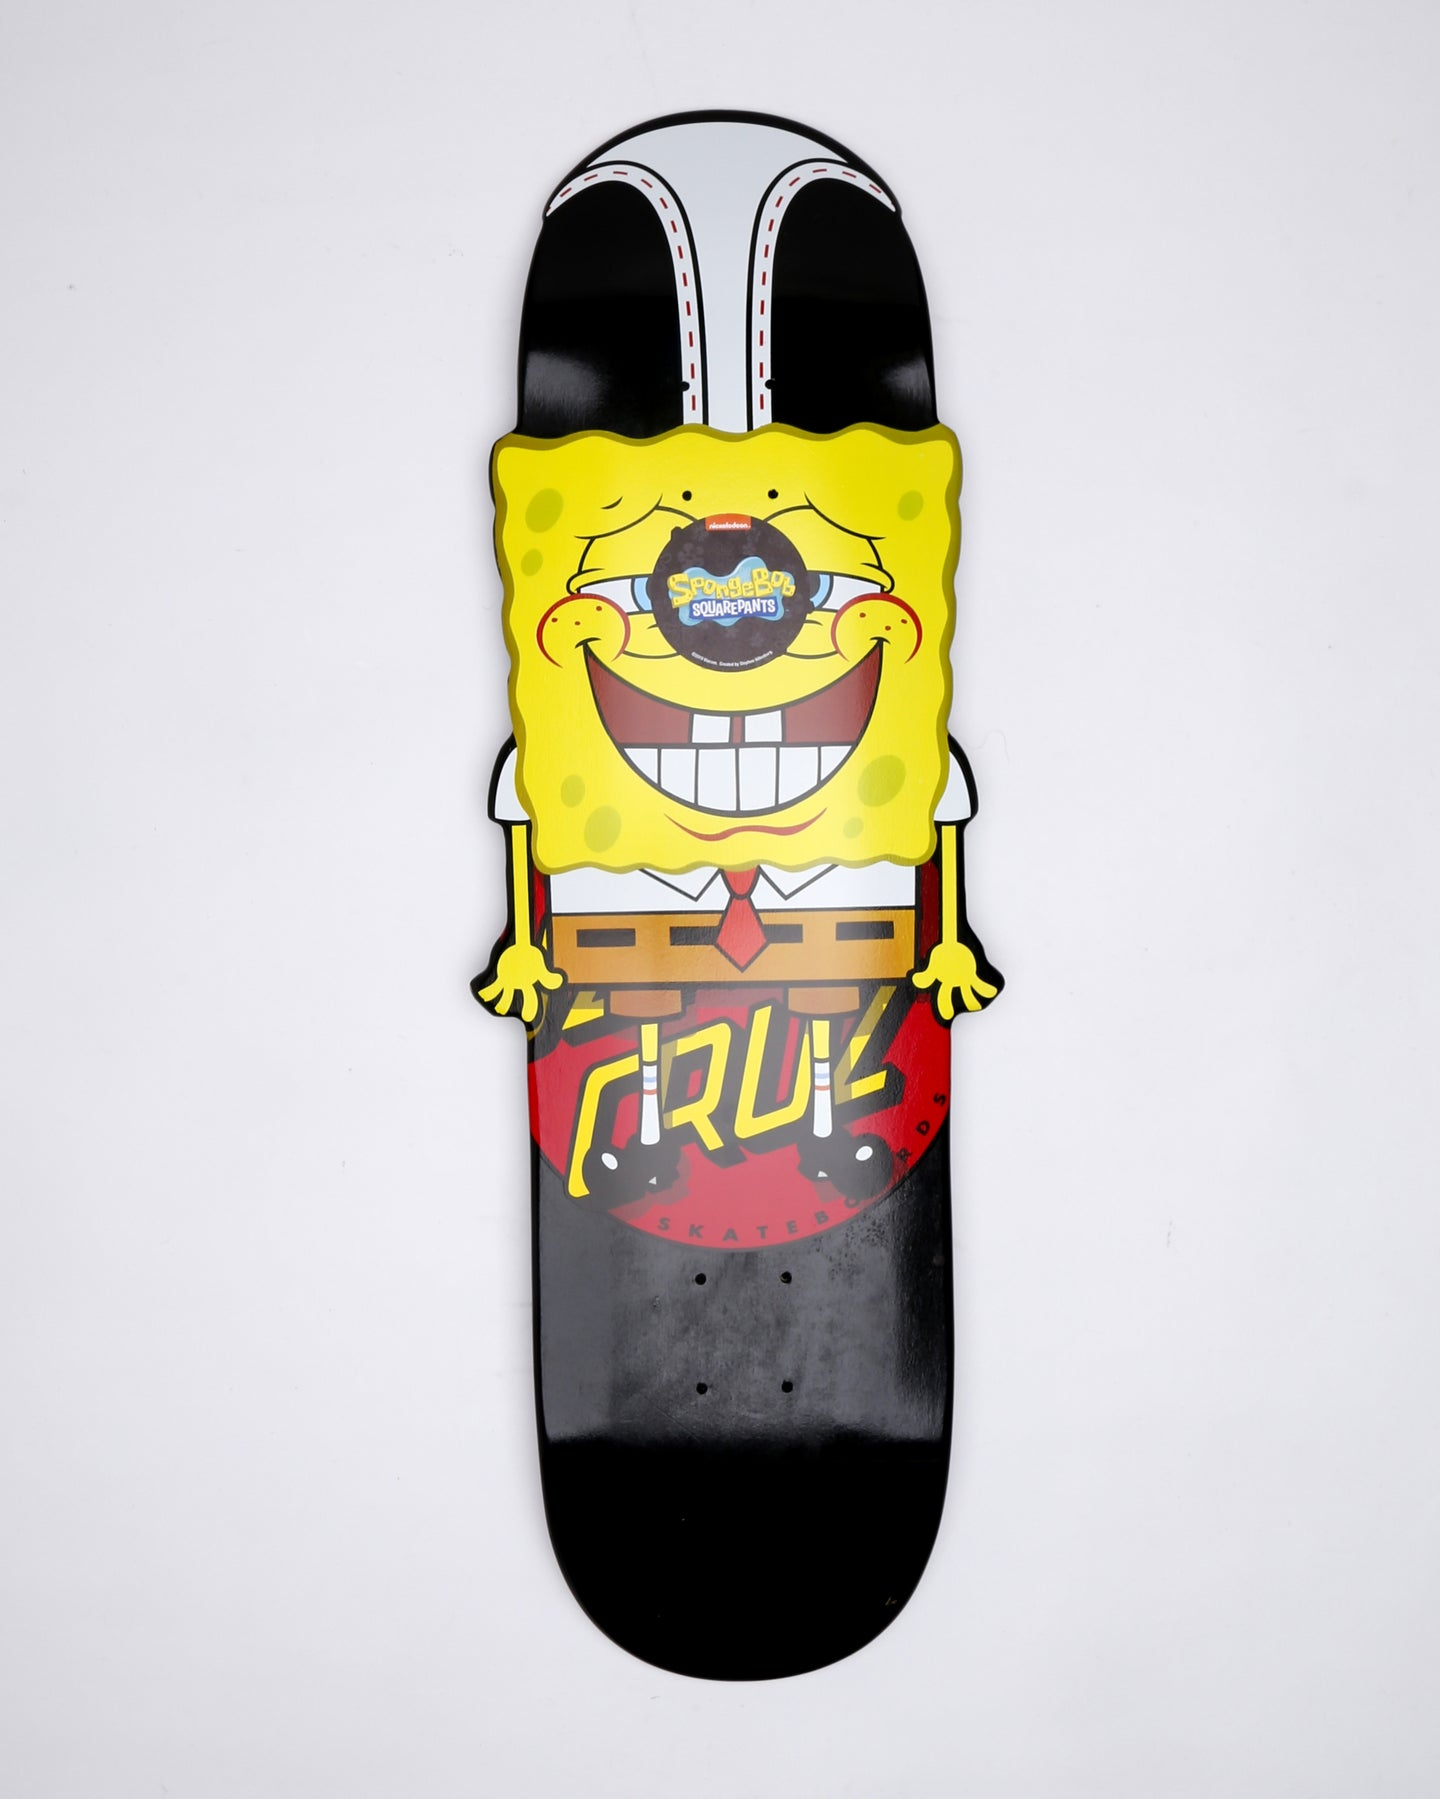 Spongebob Hanging Out Deck